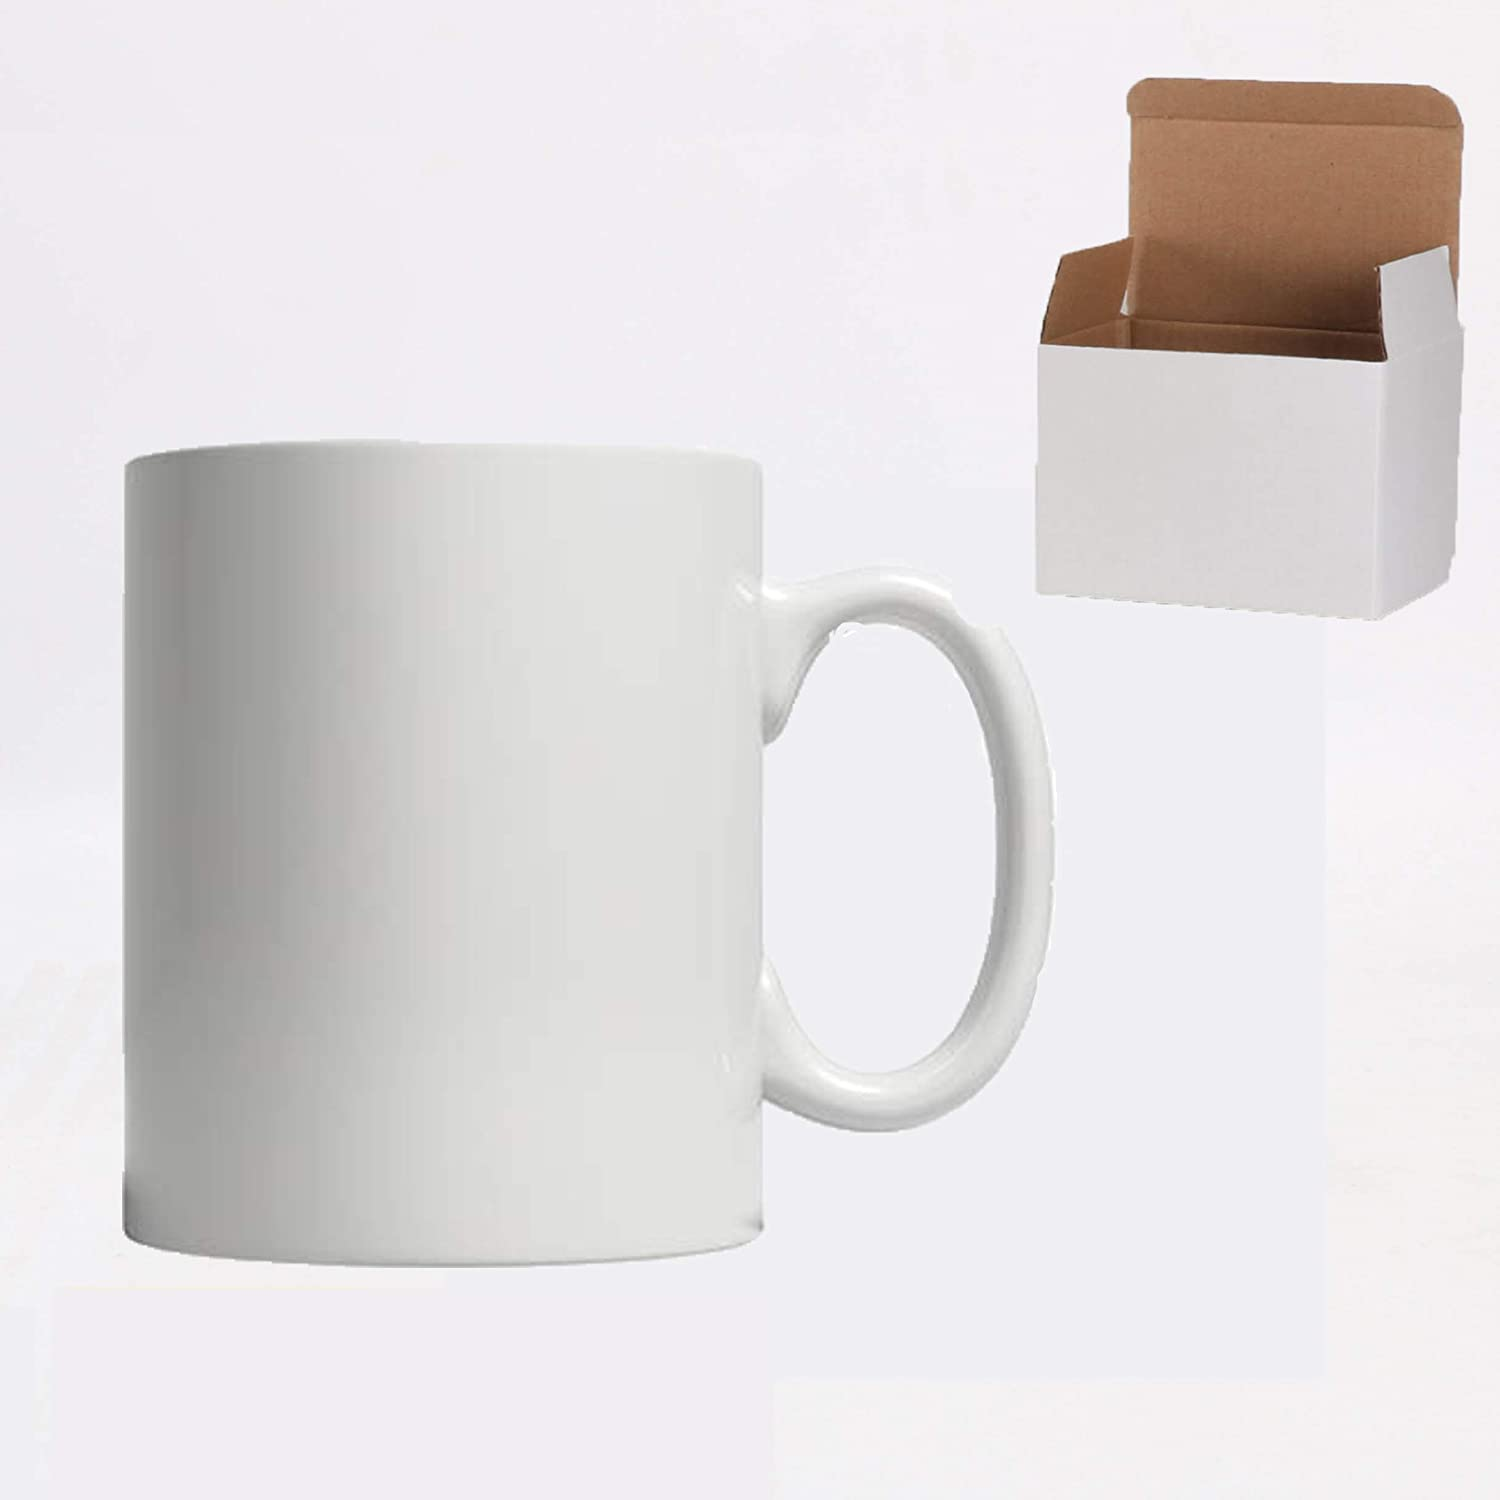 Ceramic 11oz Sublimation Coffee Max 50% OFF Mug in White Limited time trial price Packed Box